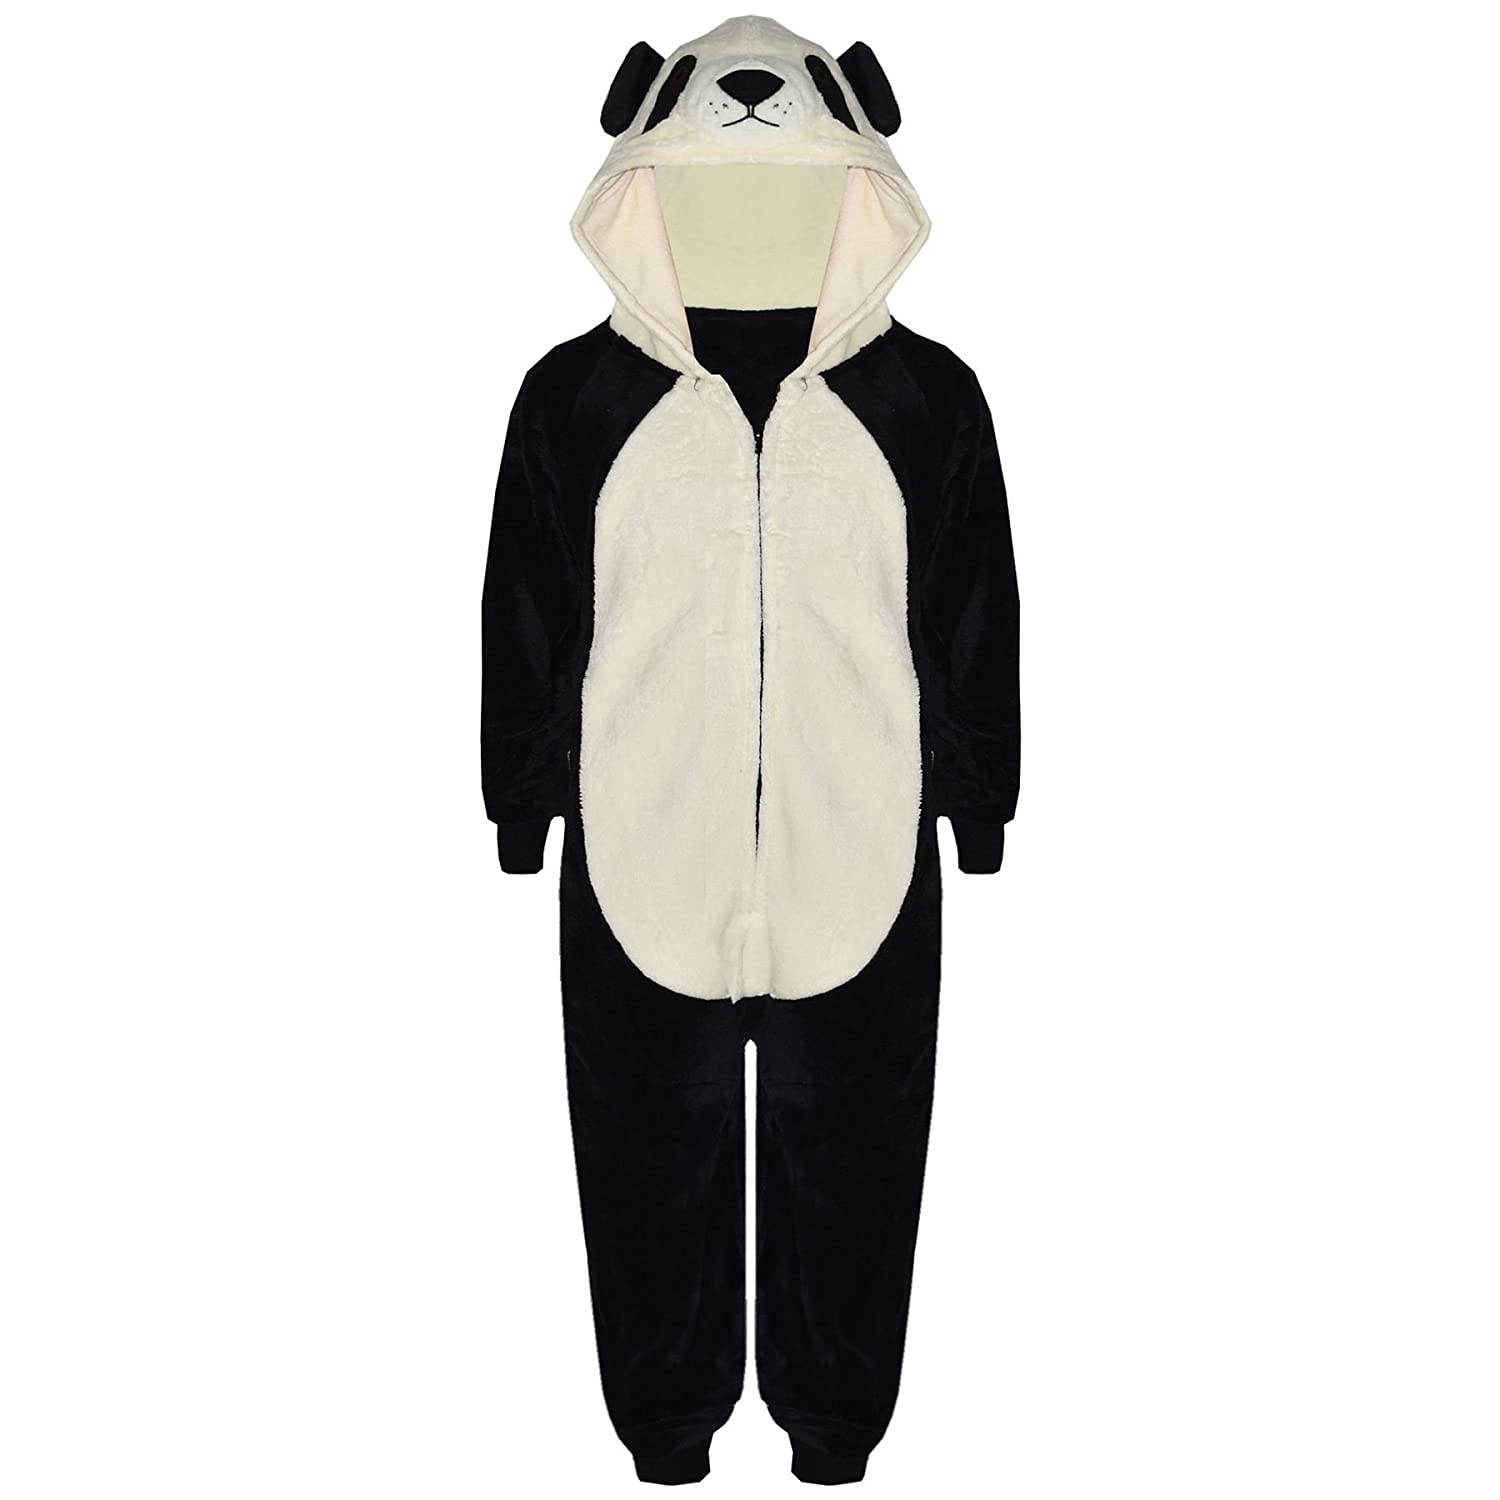 9a7be5cd1a0b Kids Girls Boys A2Z Onesie One Piece Soft Fluffy Panda Xmas Costume 7-13  Years  Amazon.ca  Clothing   Accessories